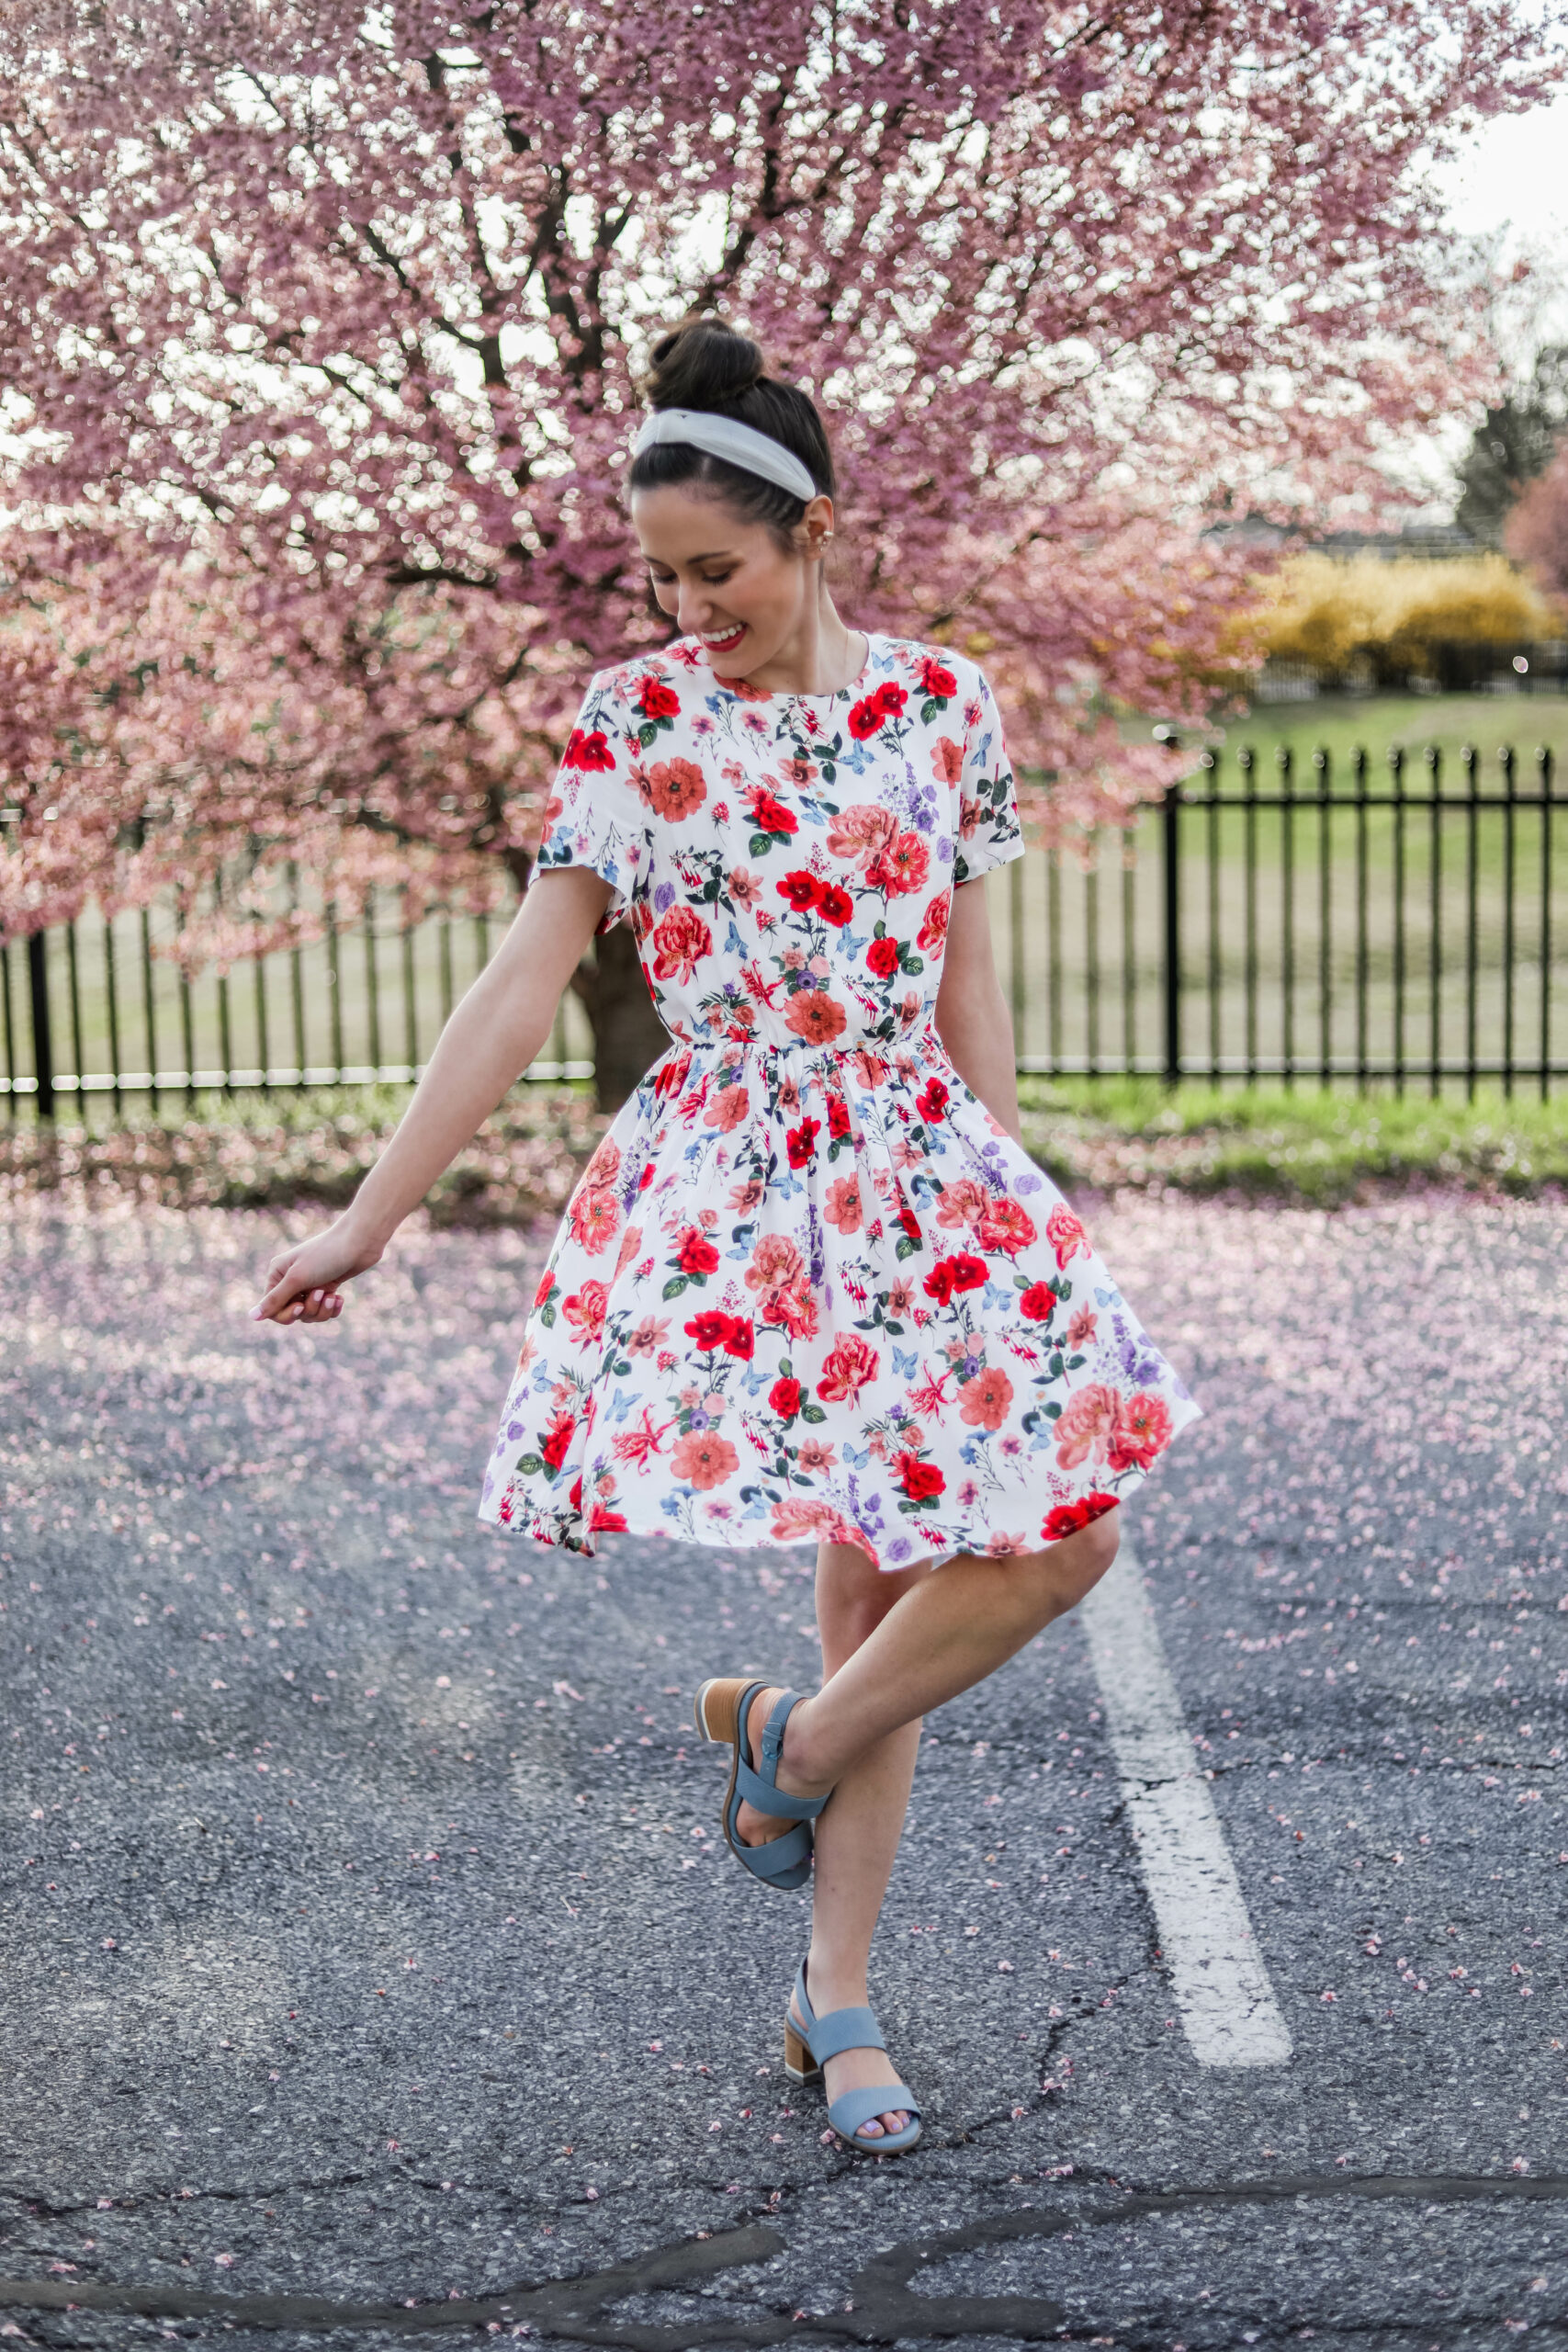 AFFORDABLE FLORAL DRESS - Under $30 amazon dress for spring occasions - on Coming Up Roses